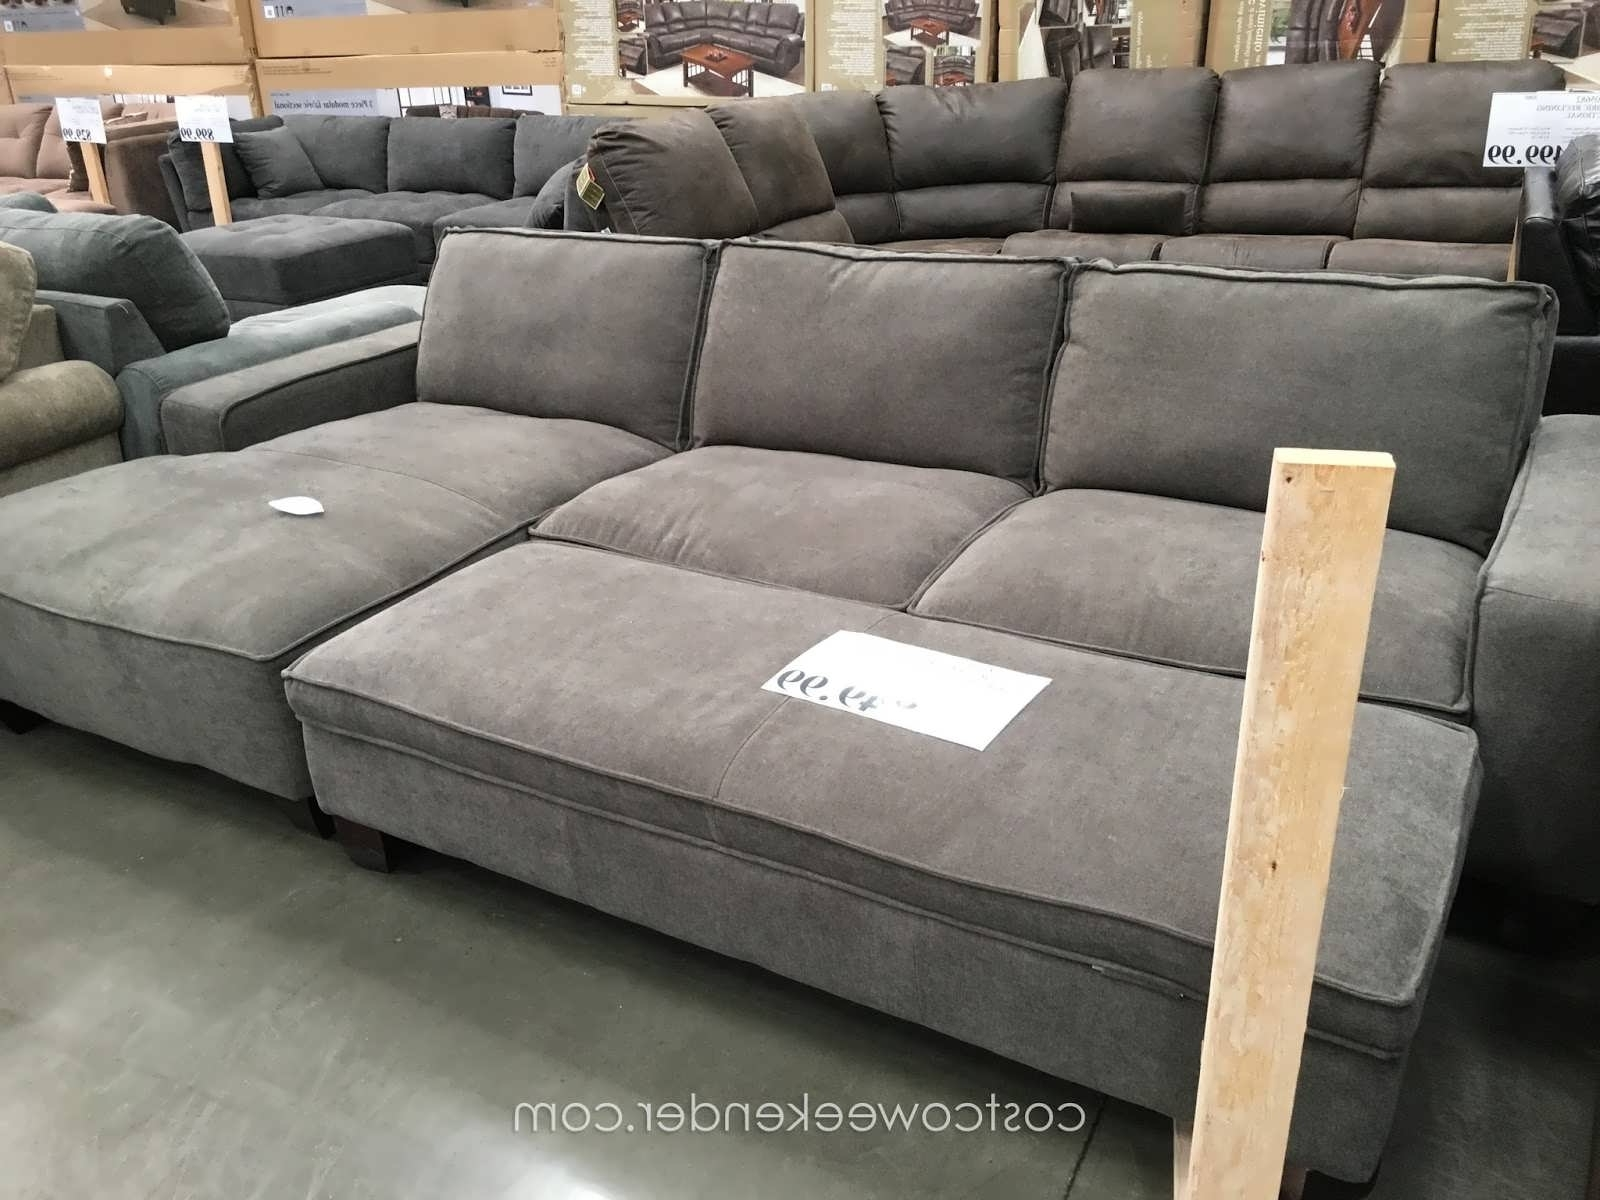 Best And Newest Sofa : L Sofa Modular Sectional Sofa Couch With Chaise Sectional Intended For Deep Sofas With Chaise (View 2 of 15)